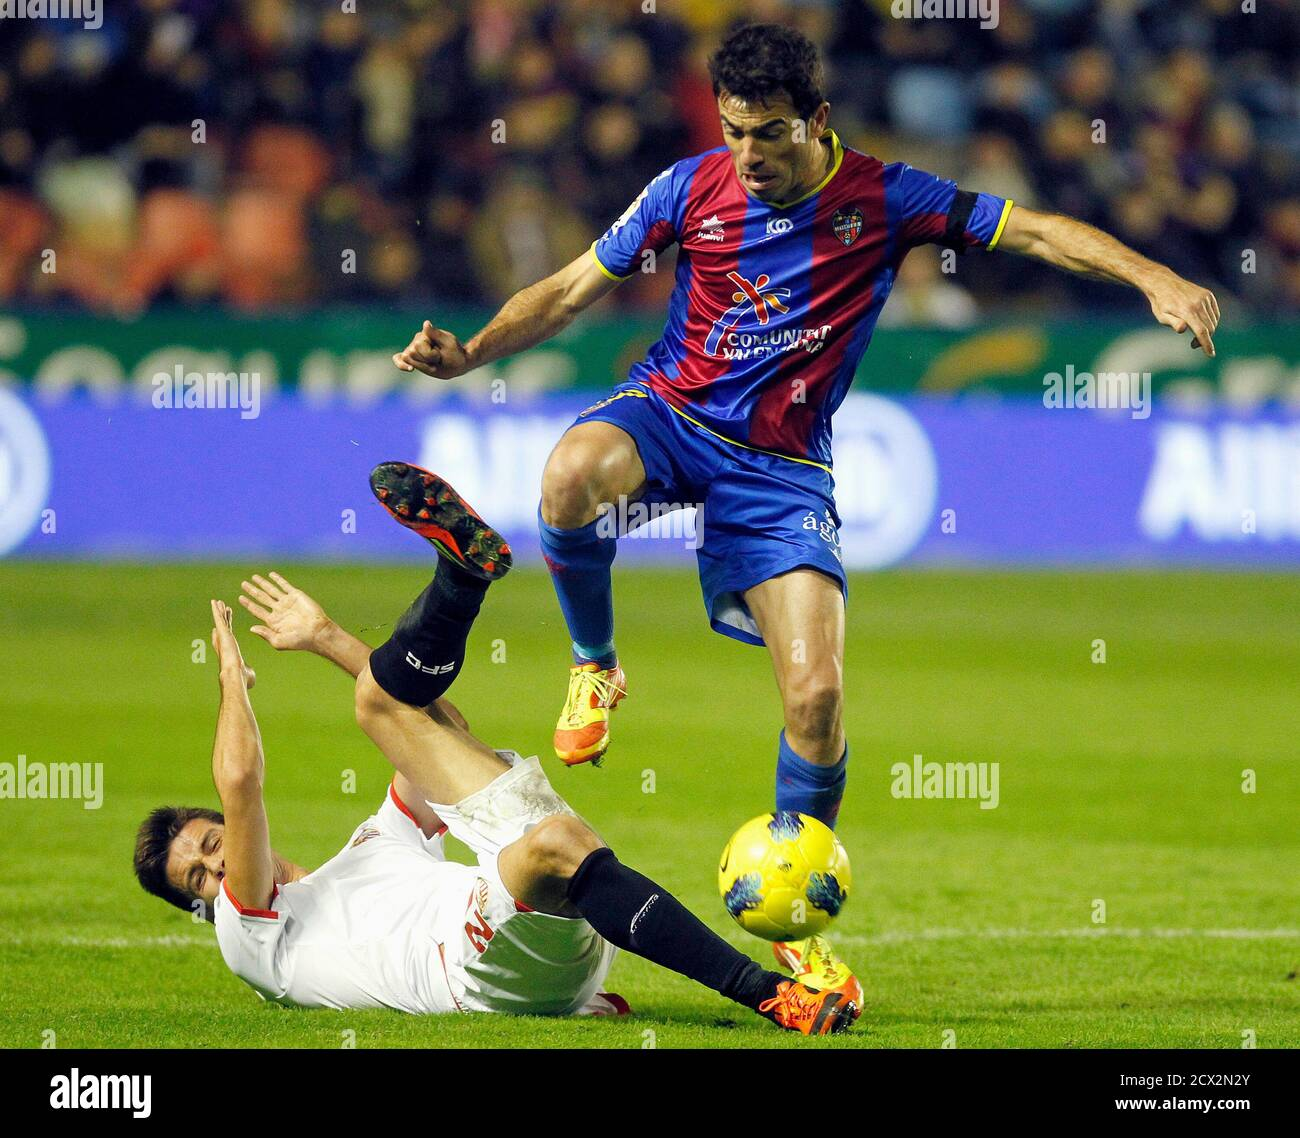 Levante's Xavi Venta controls the ball over Sevilla's Manu del Moral (on ground) during their Spanish first division soccer match at the Ciudad de Valencia Stadium in Valencia December 10, 2011. REUTERS/Heino Kalis (SPAIN - Tags: SPORT SOCCER) Foto de stock